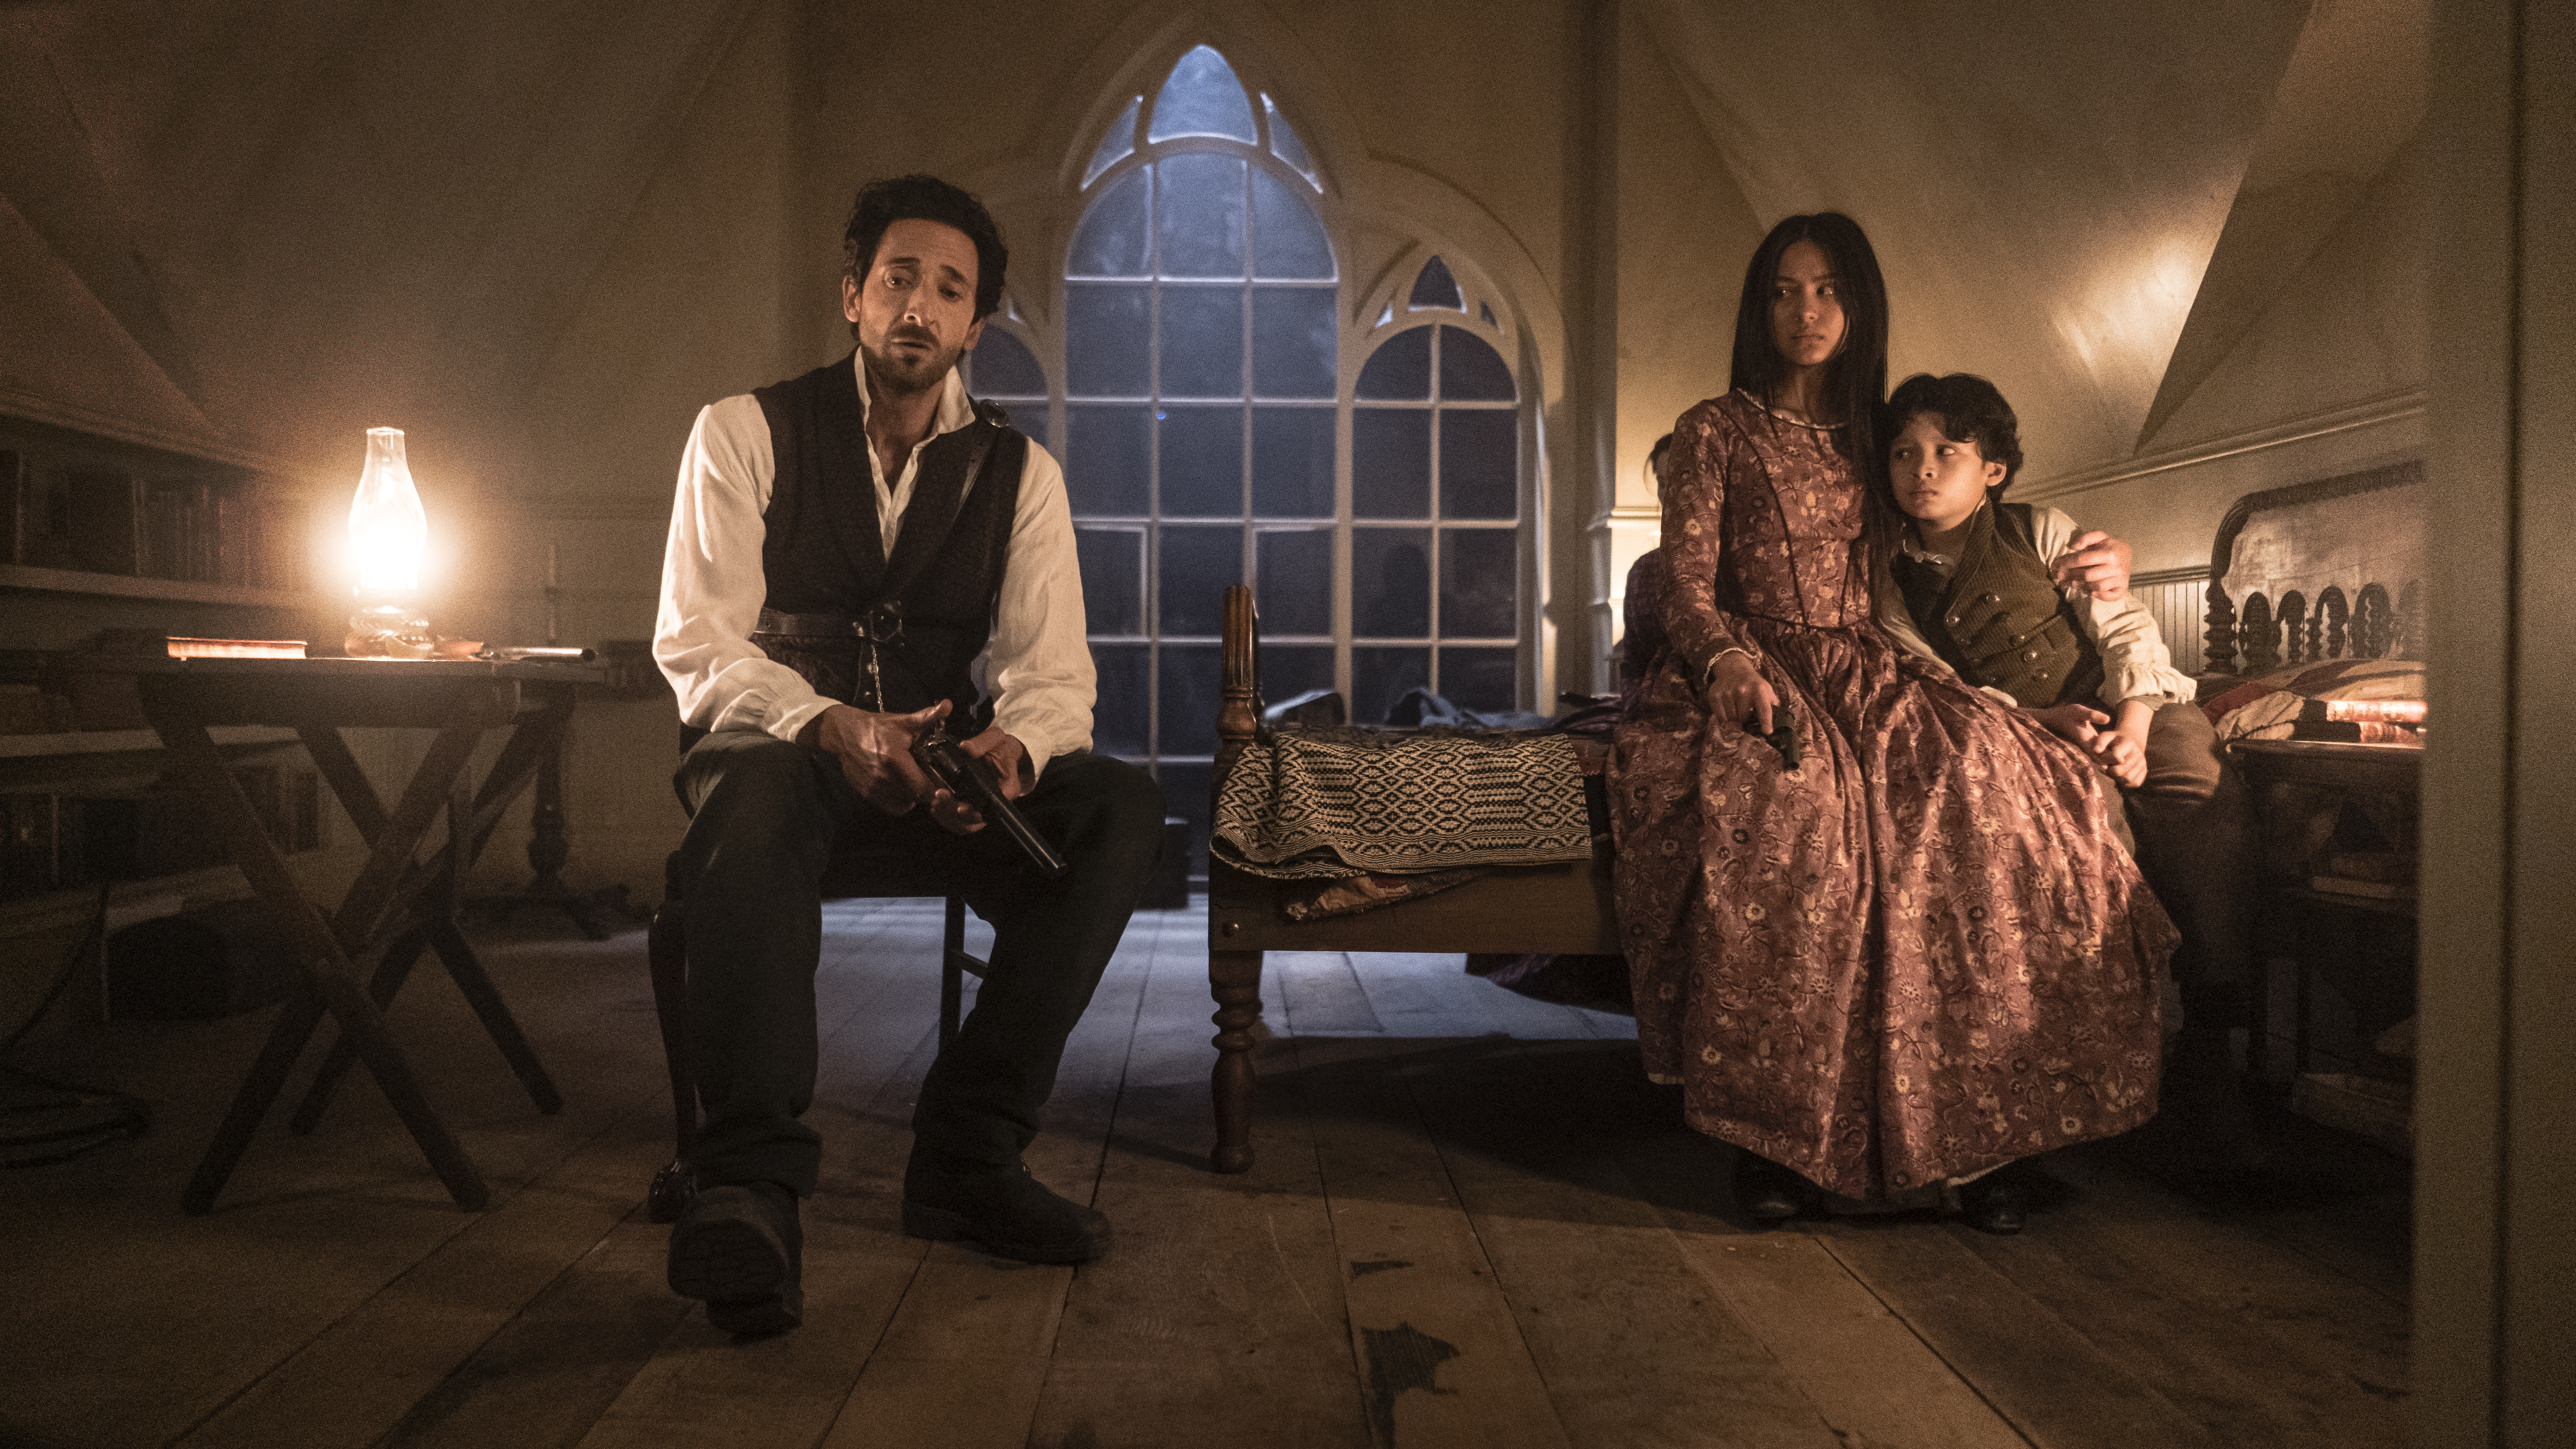 Chapelwaite 1x06 Review: The Offer